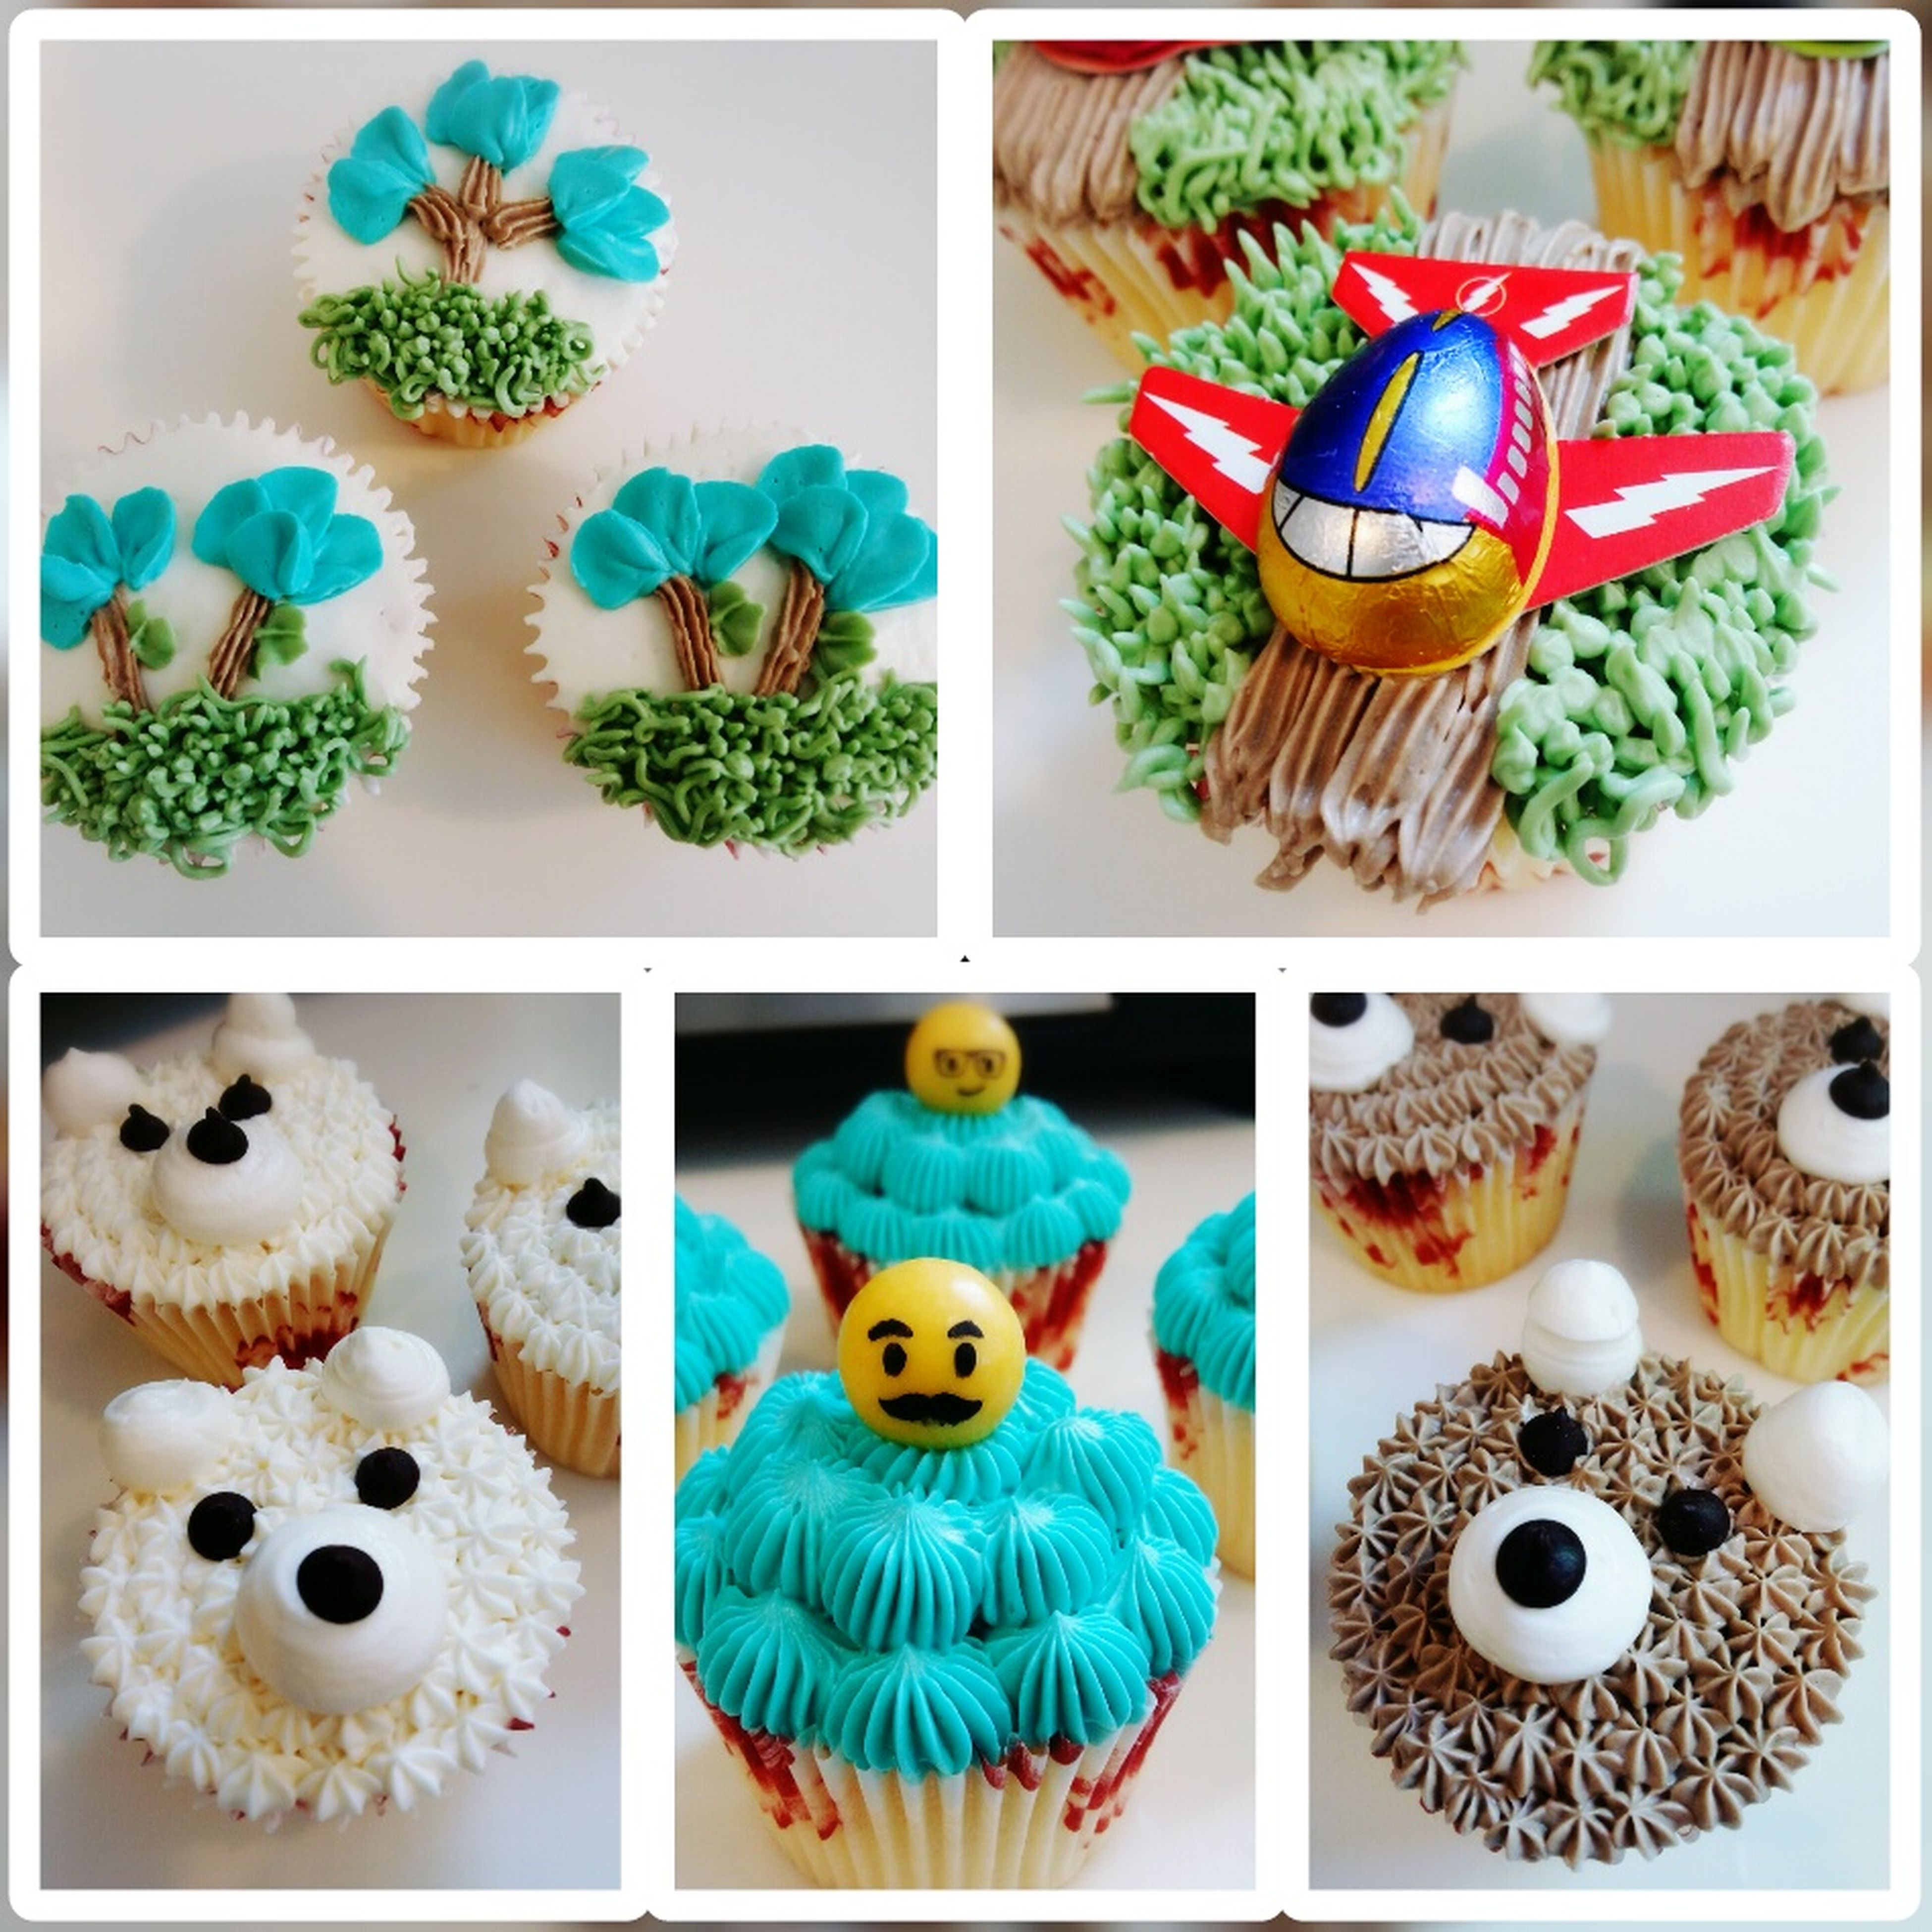 Which One Do You Prefer? Cupcakes I Love Baking My Job 😙😙😙